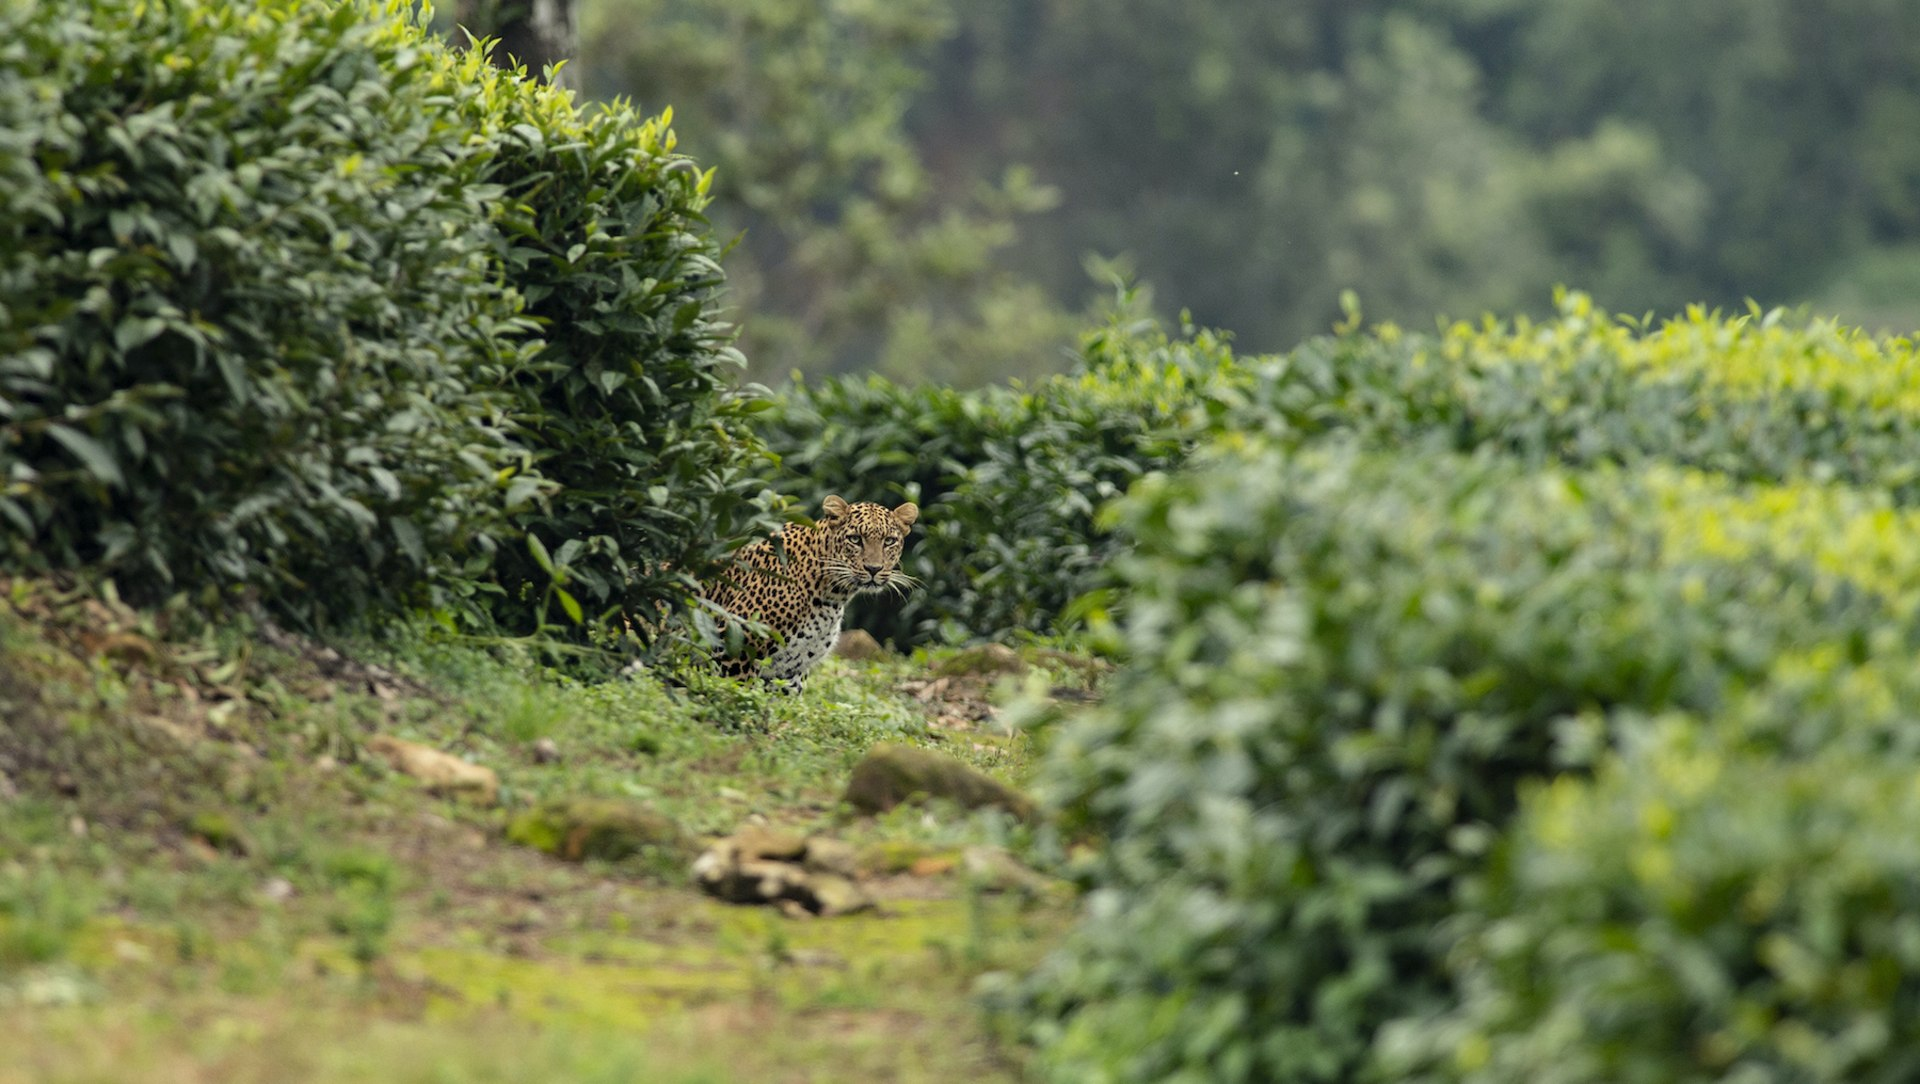 Conflict and Coexistence: Leopards and the Residents of Valparai